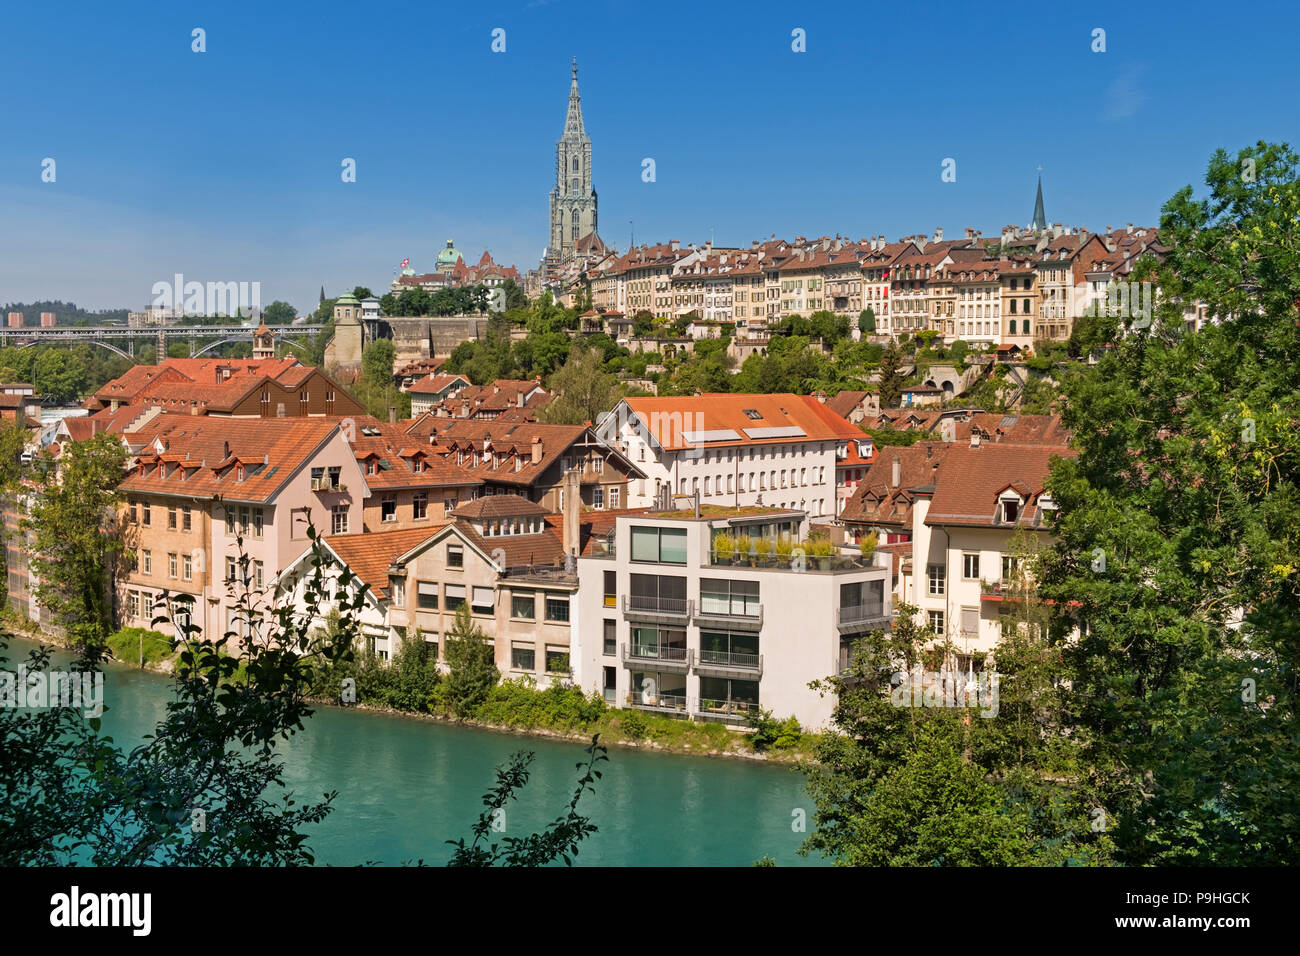 City view to River Aare and Minster Cathedral Bern Switzerland - Stock Image